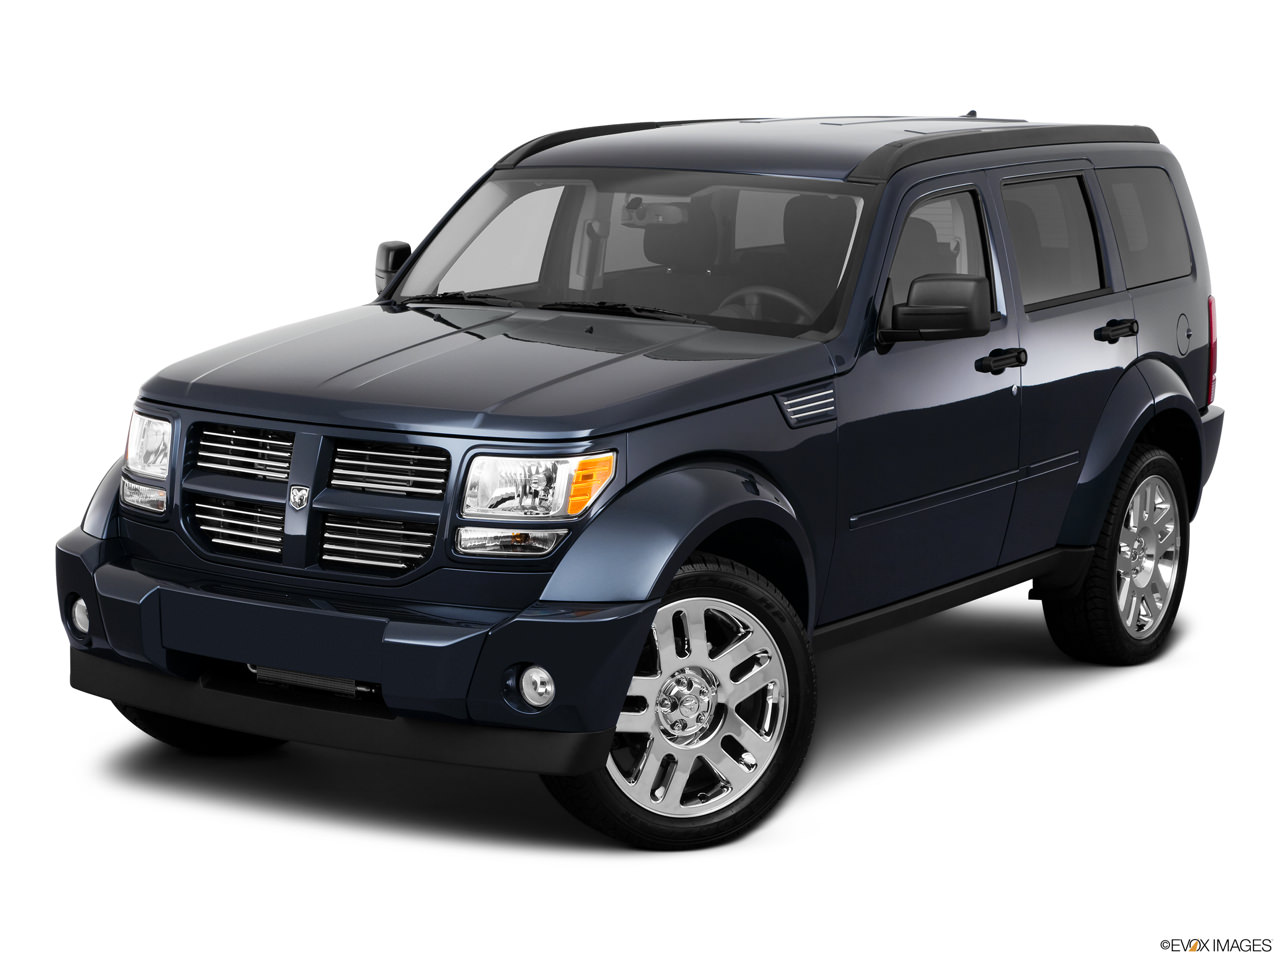 A Buyer's Guide to the 2011 Dodge Nitro